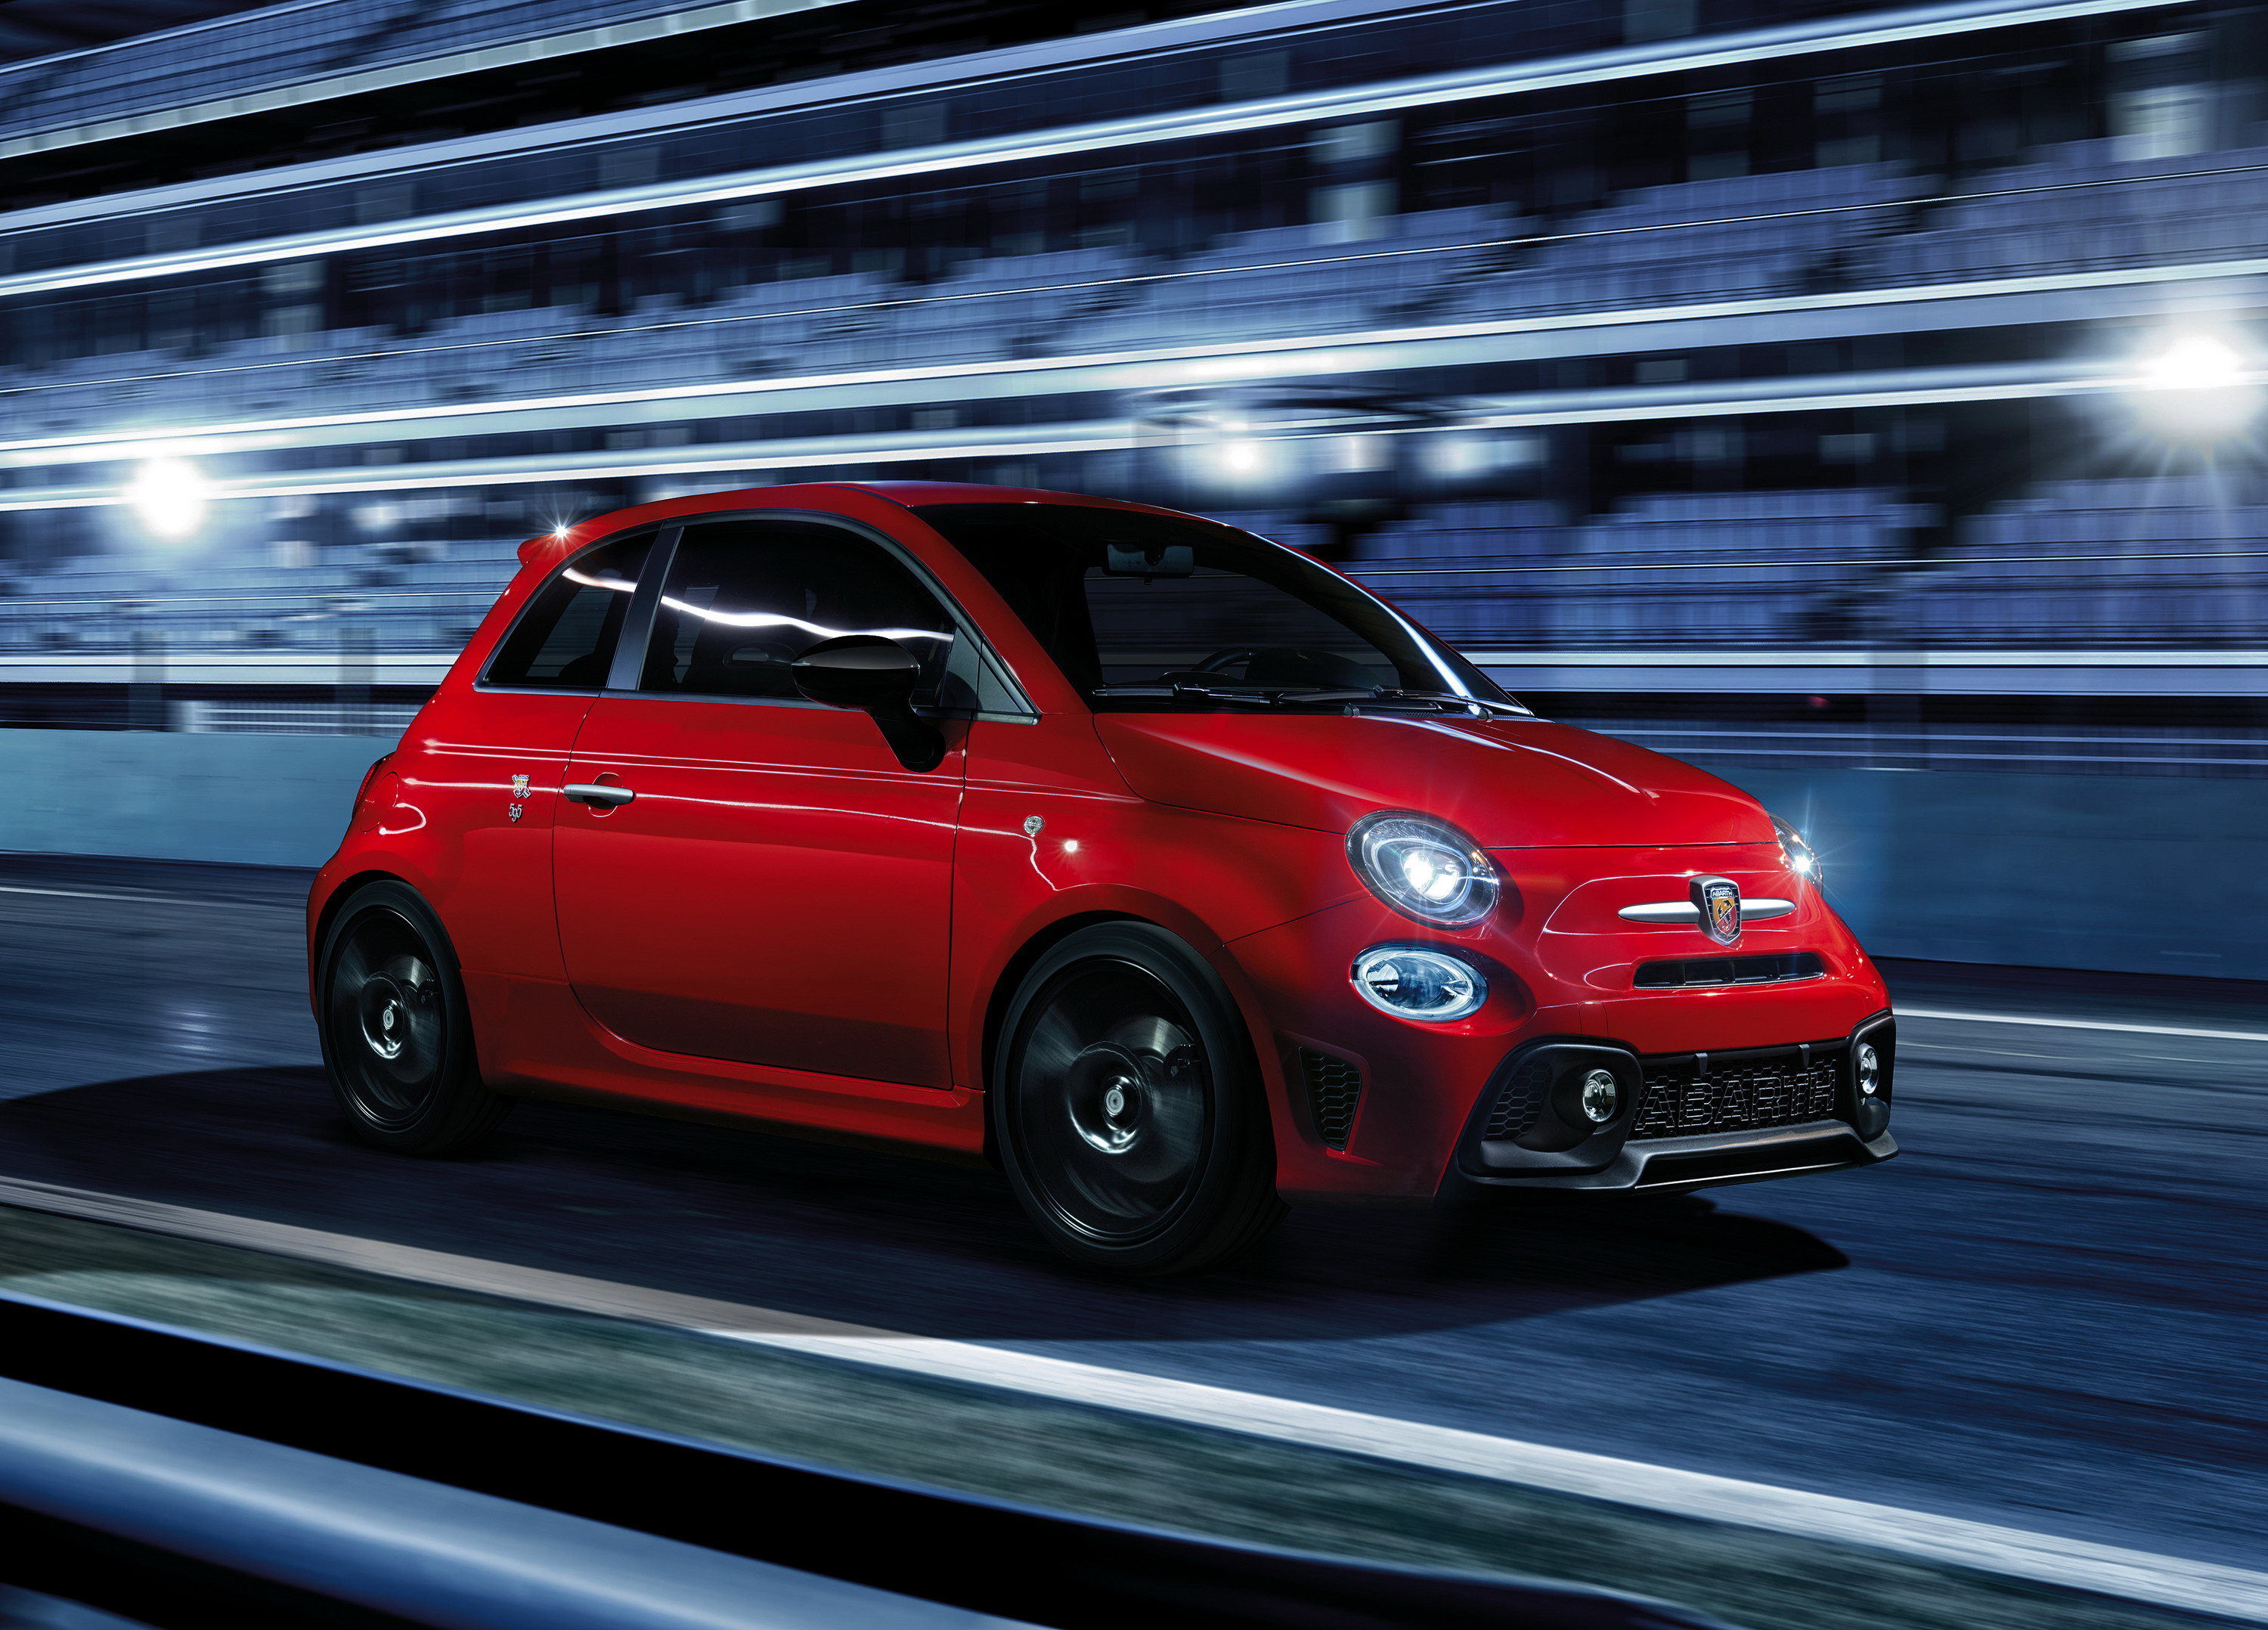 2017 Abarth 595 Pista | Top Speed. »